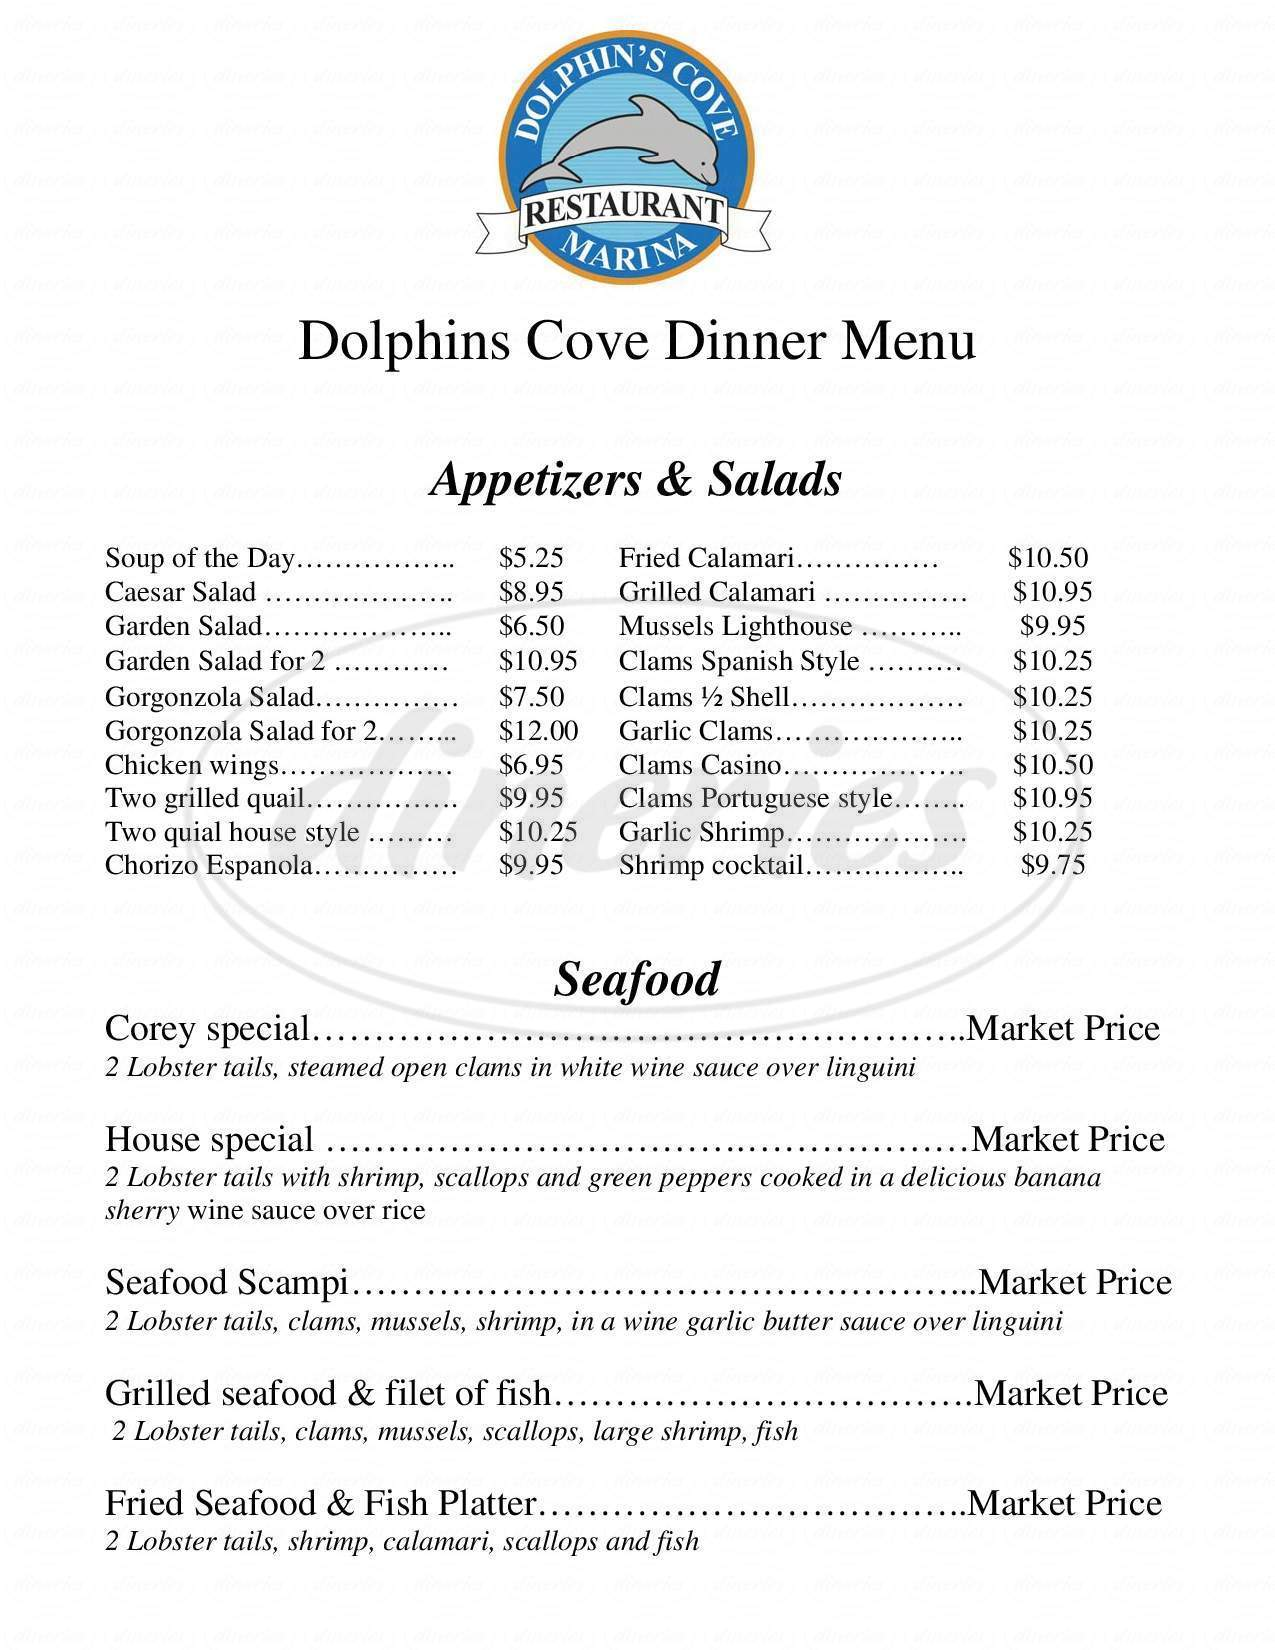 menu for Dolphin's Cove Marina